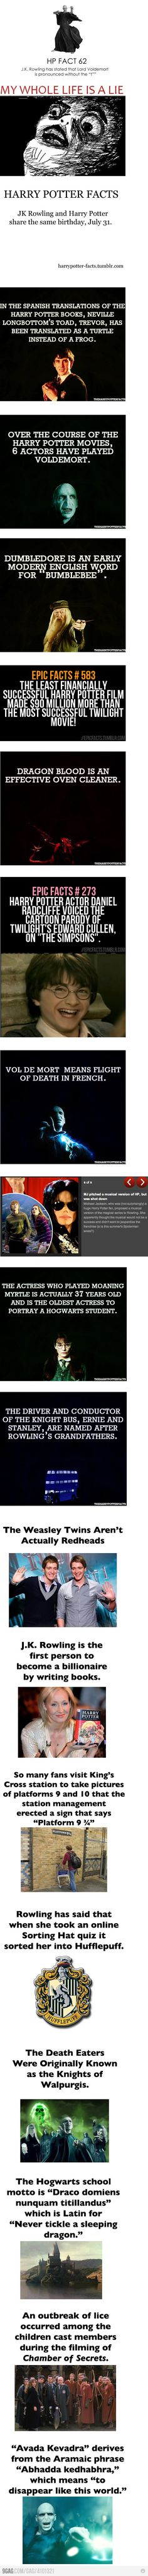 harry potter facts.......